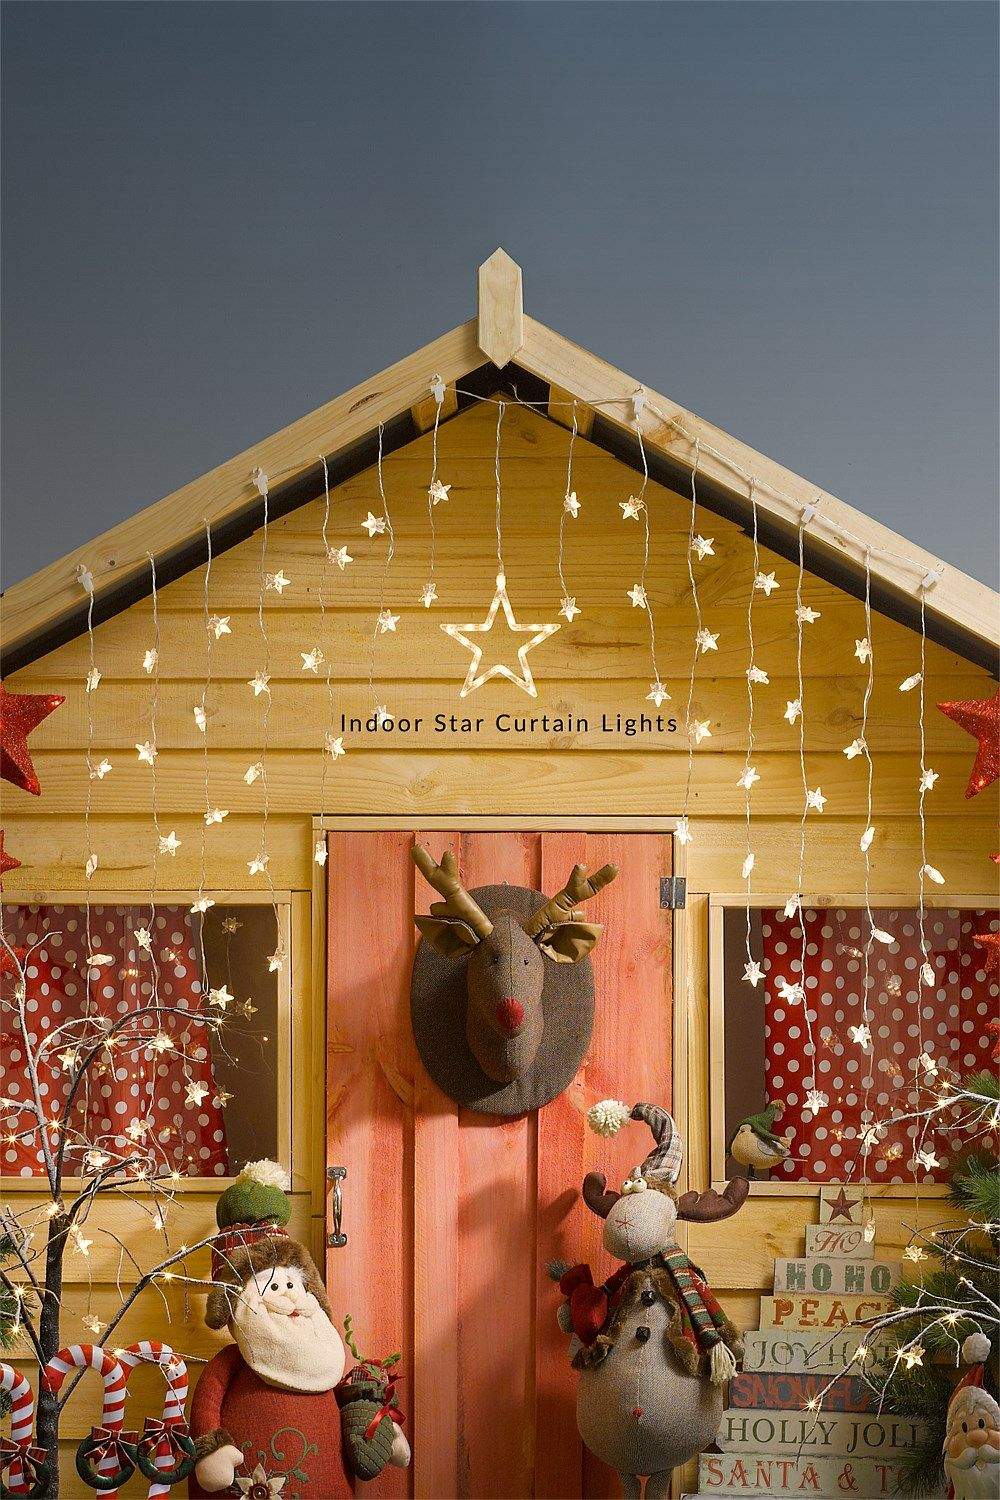 Ezibuy Christmas Shop Indoor Star Curtain Lights Ezibuy New Zealand Curtain Lights Lights Home Gifts